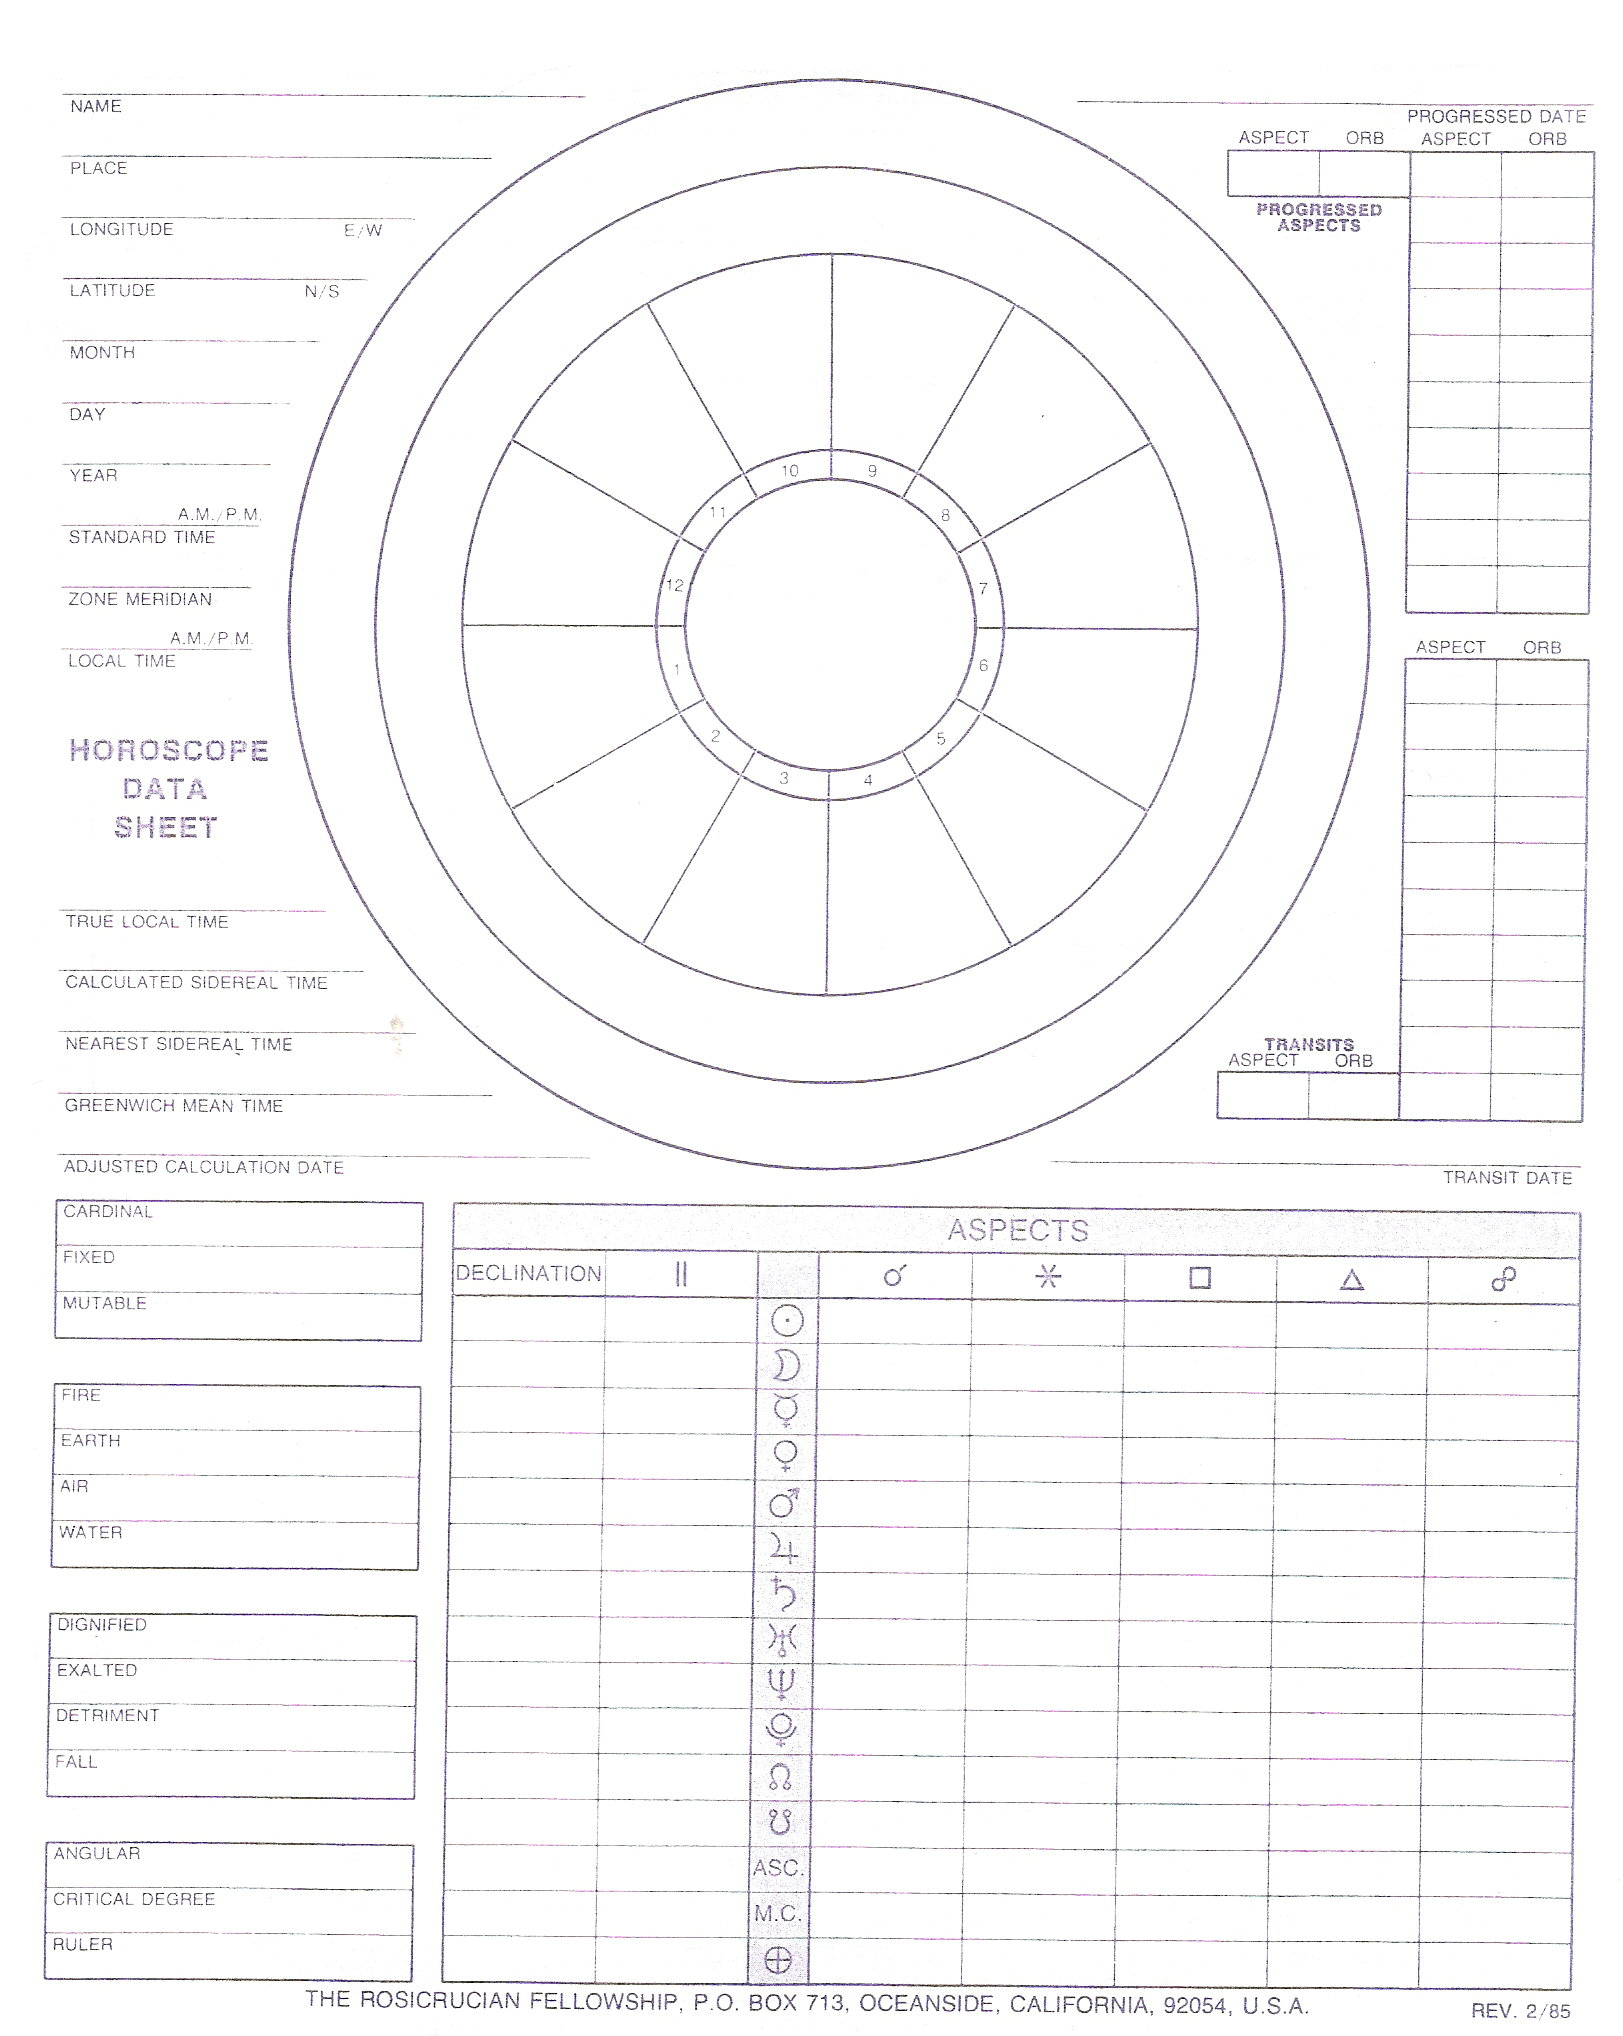 Blank astrology wheel blank with data and worksheet 2 sided front and back nvjuhfo Gallery